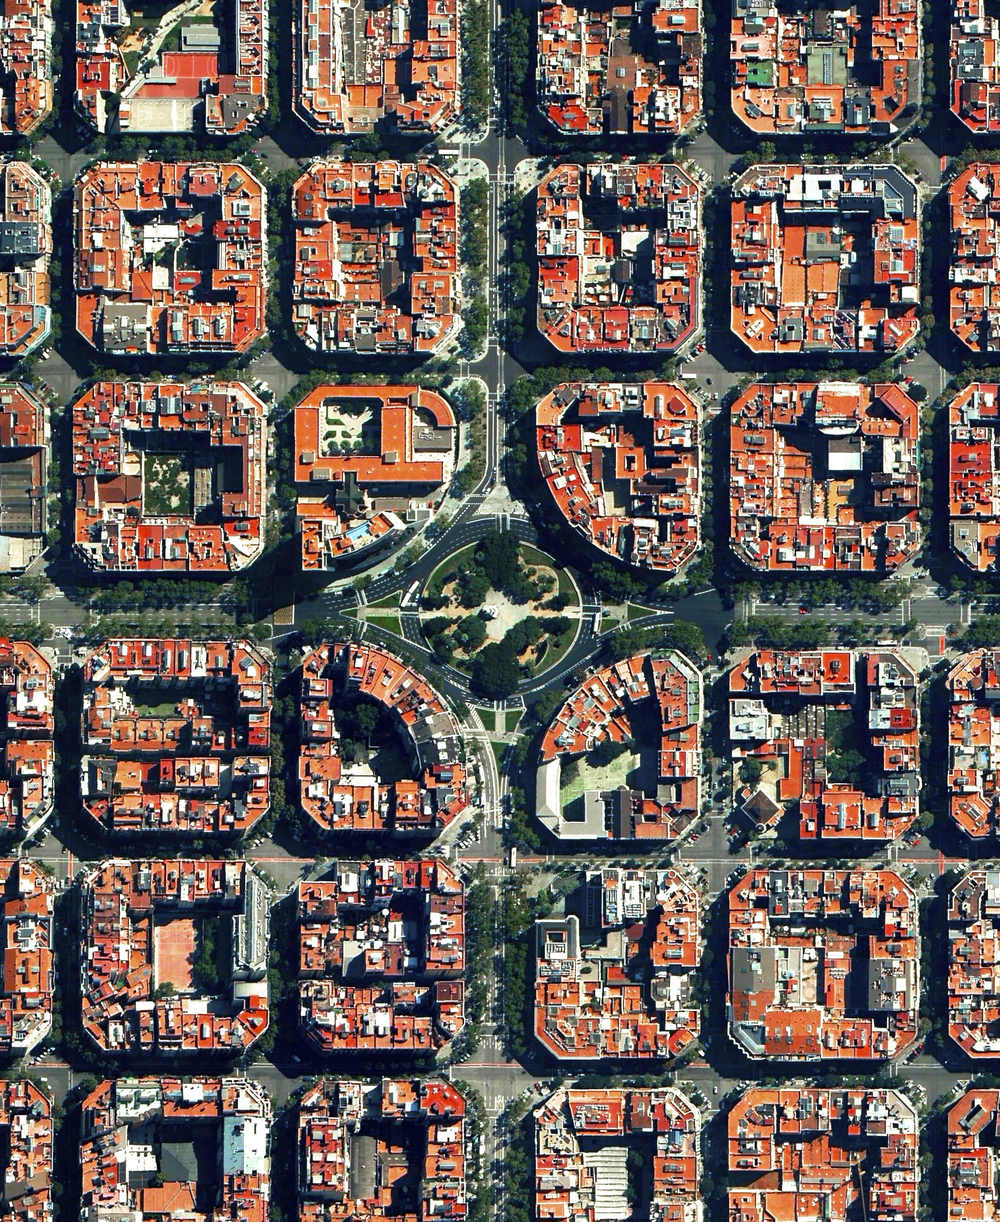 2/19/2016 Plaça de Tetuan Eixample District, Barcelona, Spain 41.394921°N 2.175507°E   Plaça de Tetuan is a major square located in the Eixample district of Barcelona, Spain. The area characterized by its strict grid pattern, octagonal intersections, and apartments with communal courtyards.